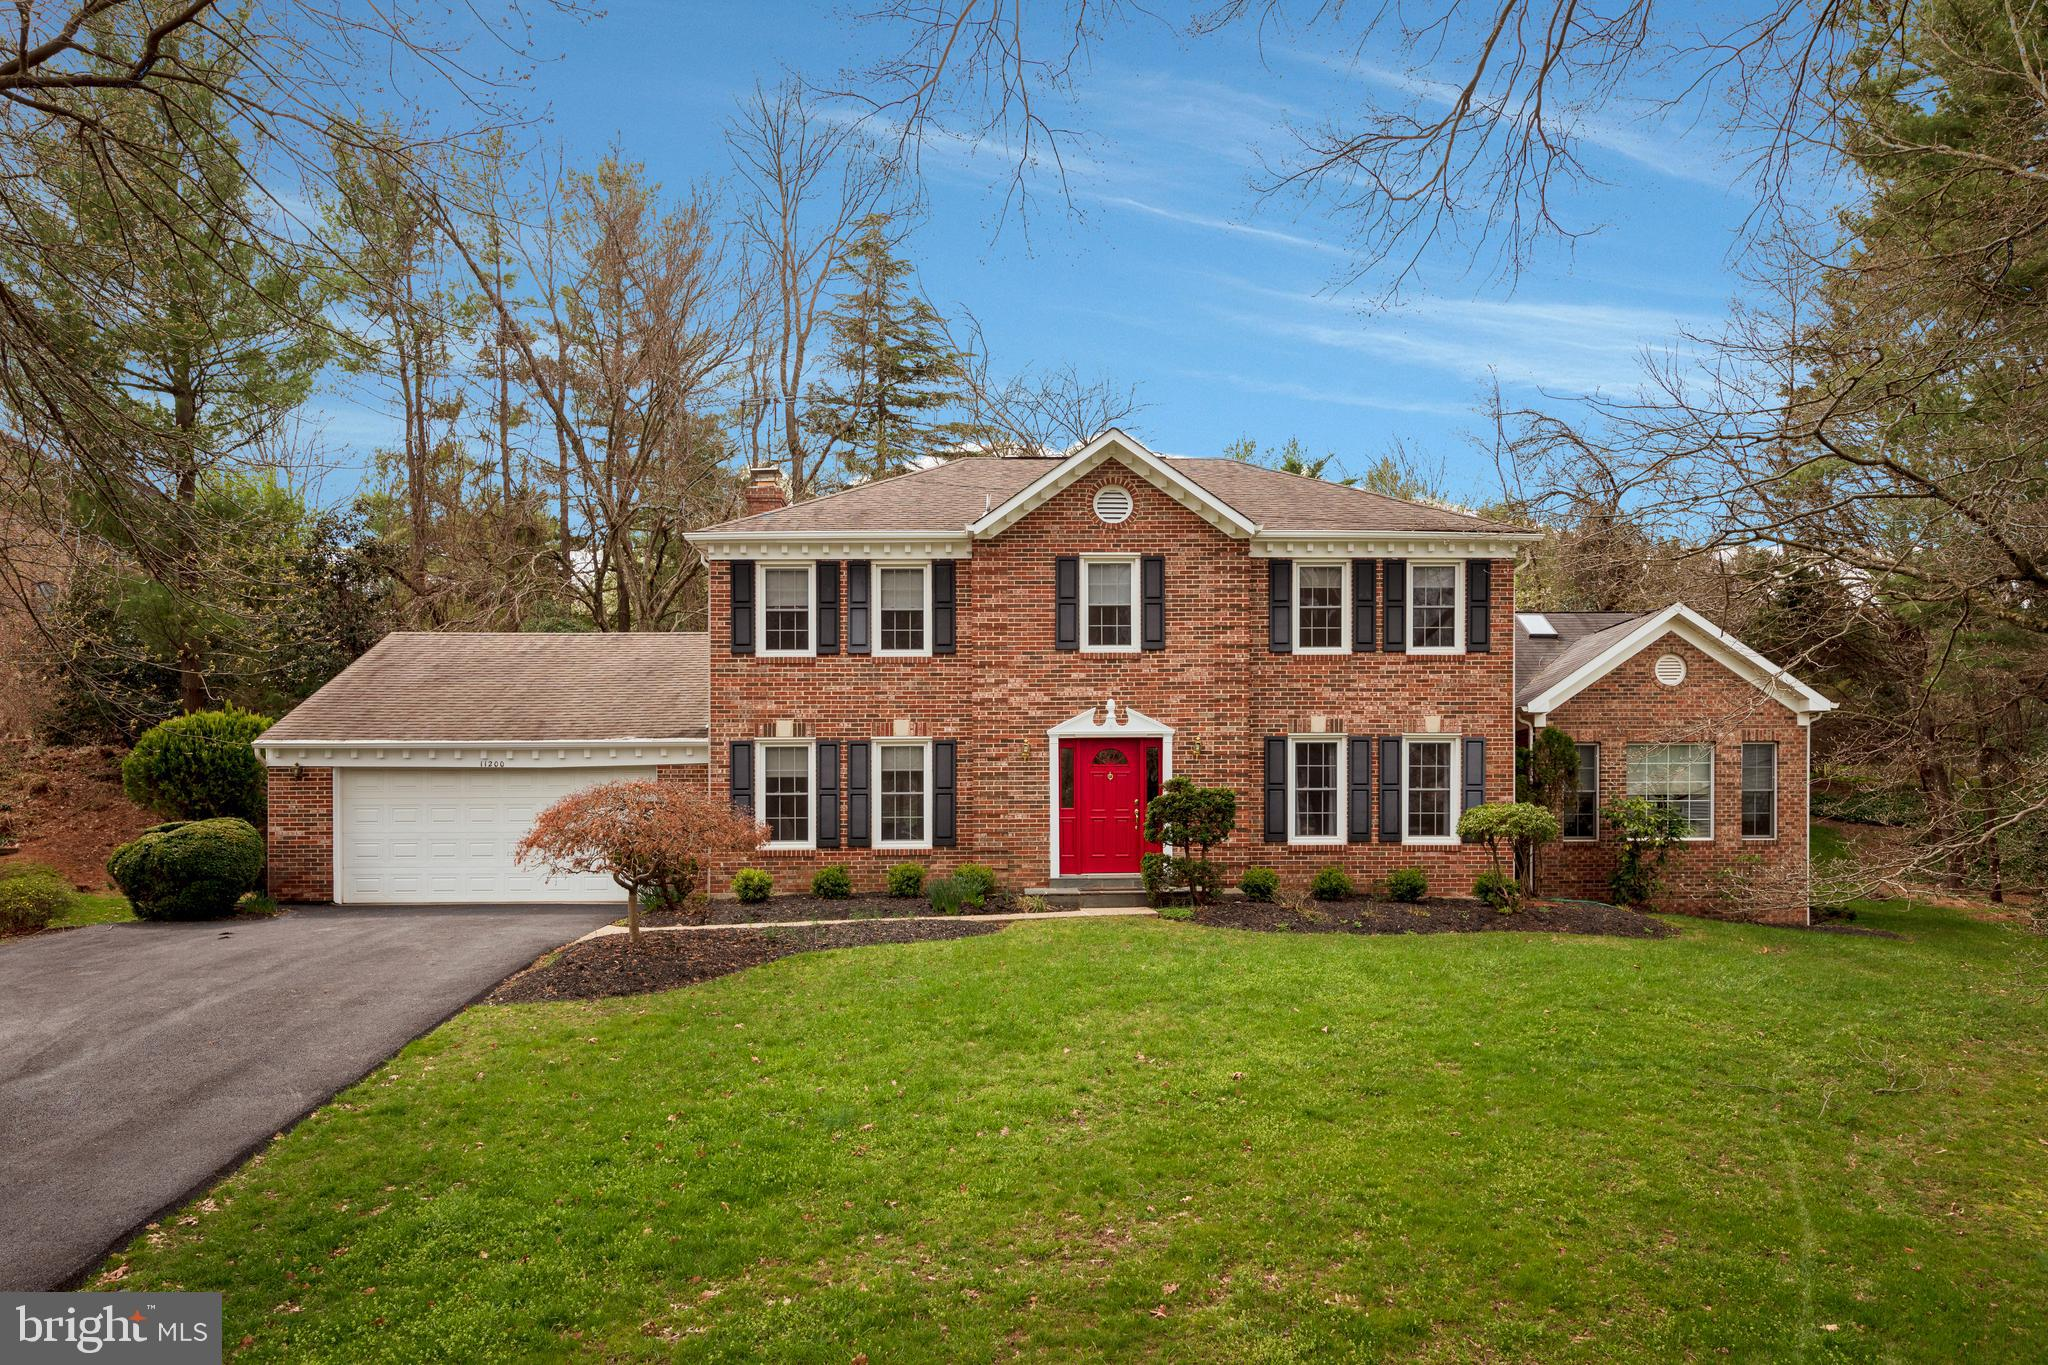 11200 HAWHILL END, POTOMAC, MD 20854